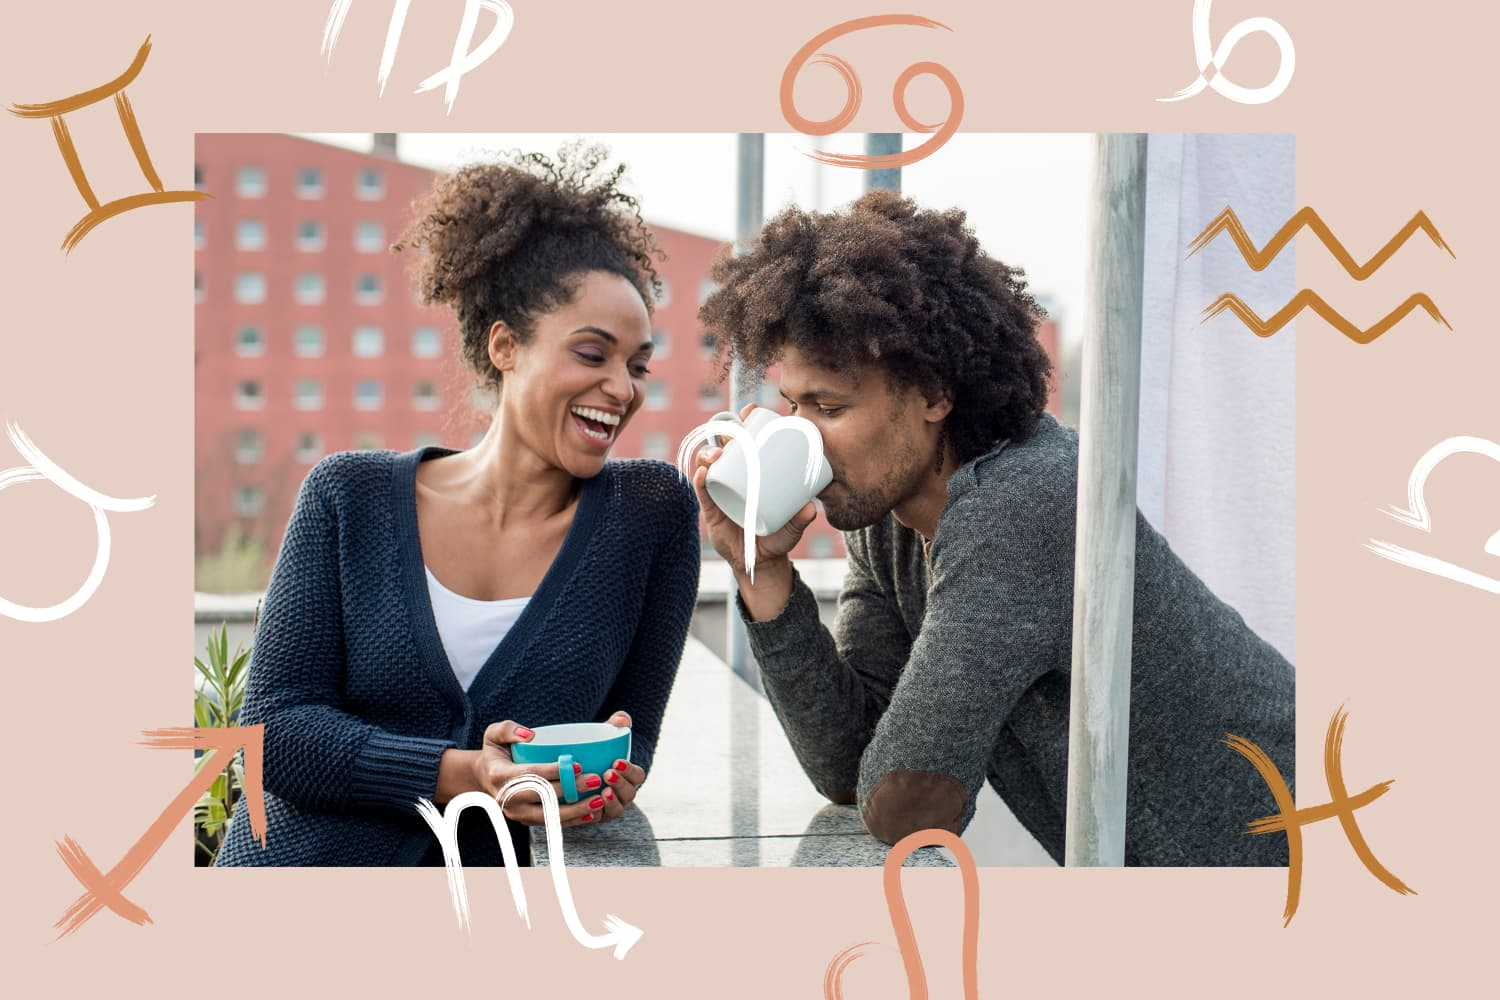 3 Ways You Can Be a Better Neighbor, According to Your Zodiac Sign